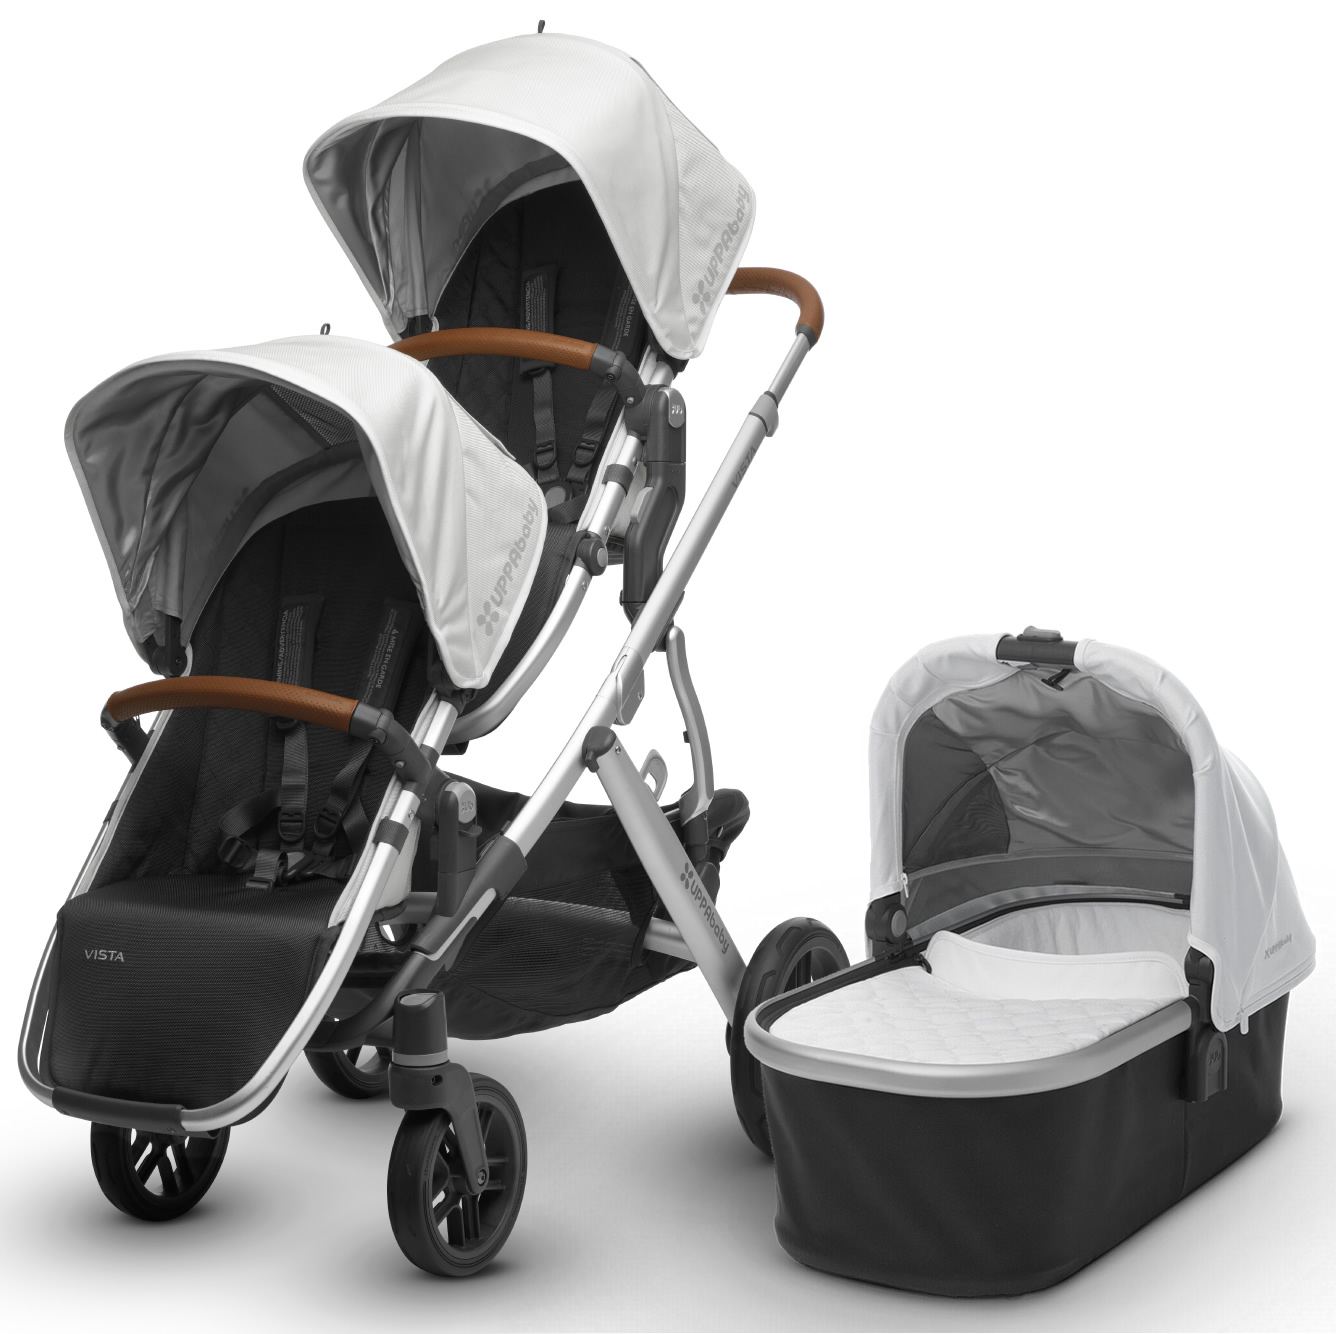 UPPAbaby 2018 Vista Double Stroller - Loic (White/Silver/Saddle Leather)